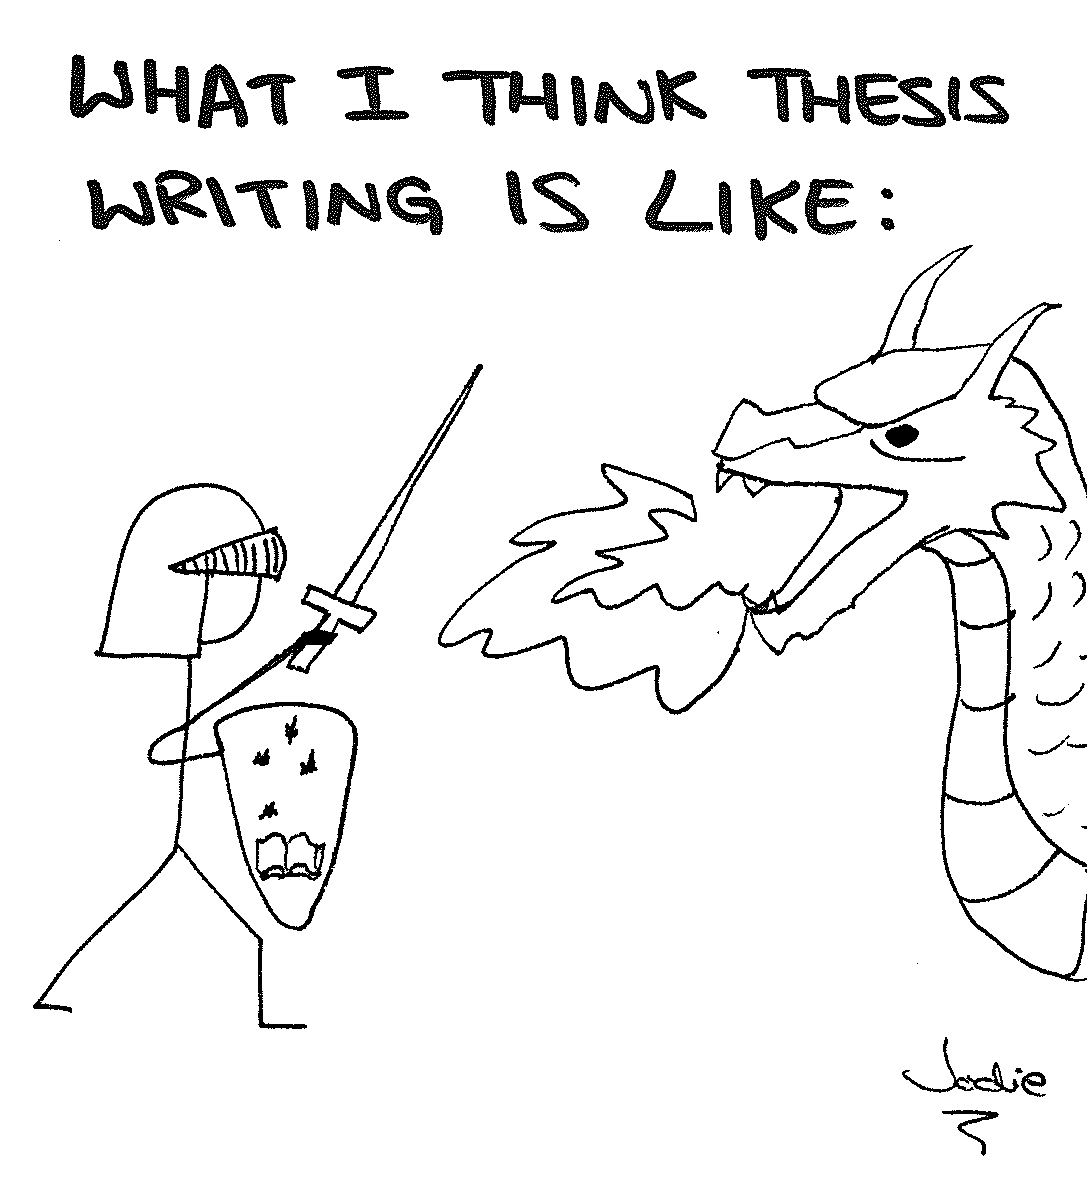 Writing up your phd thesis